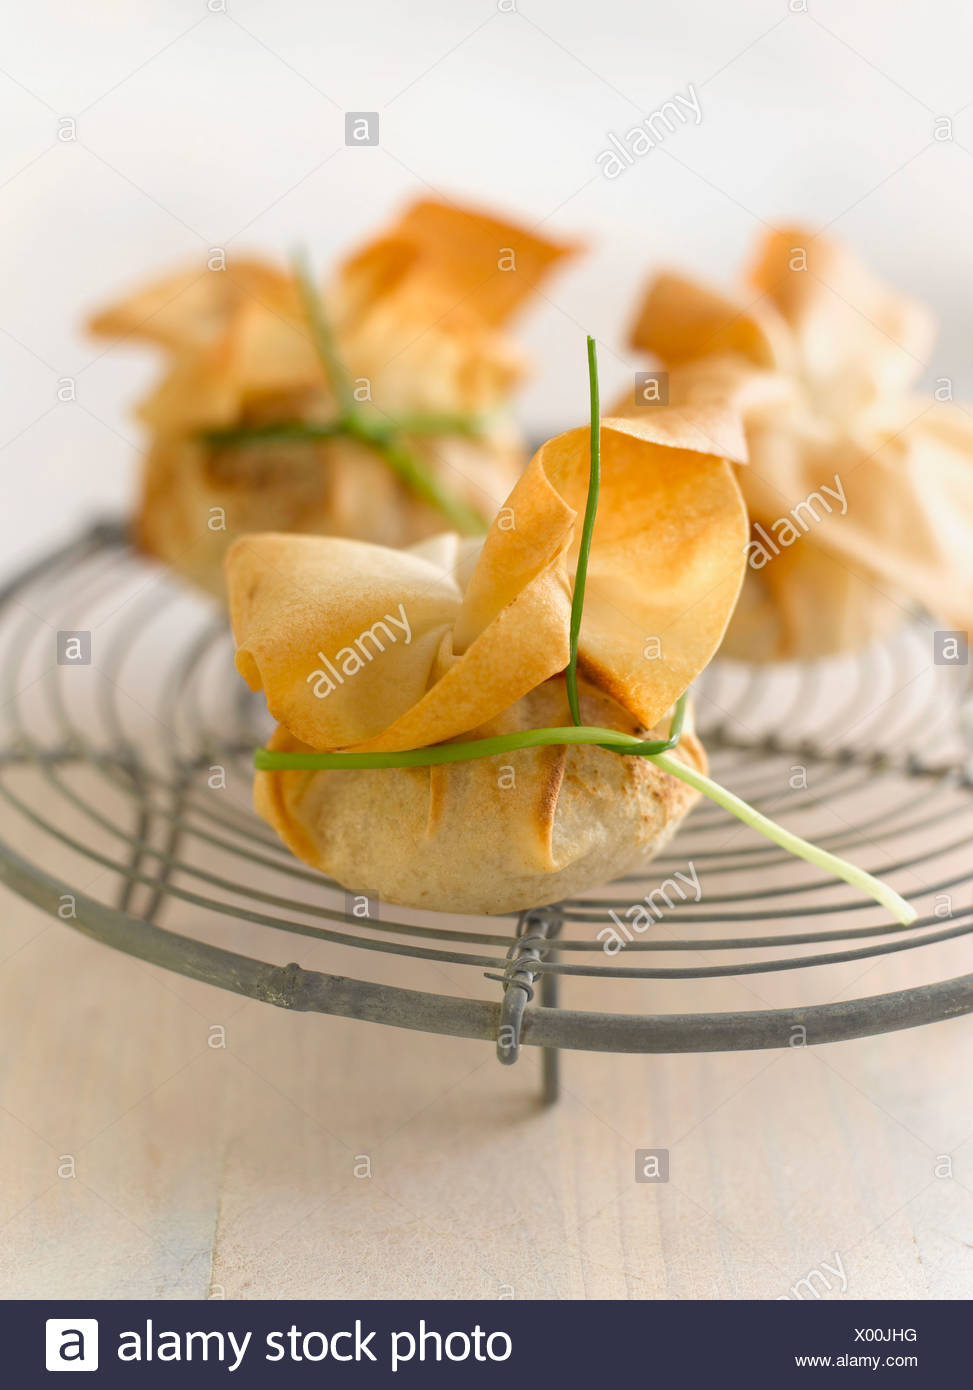 Stuffed dim sum bag on cooling rack - Stock Image